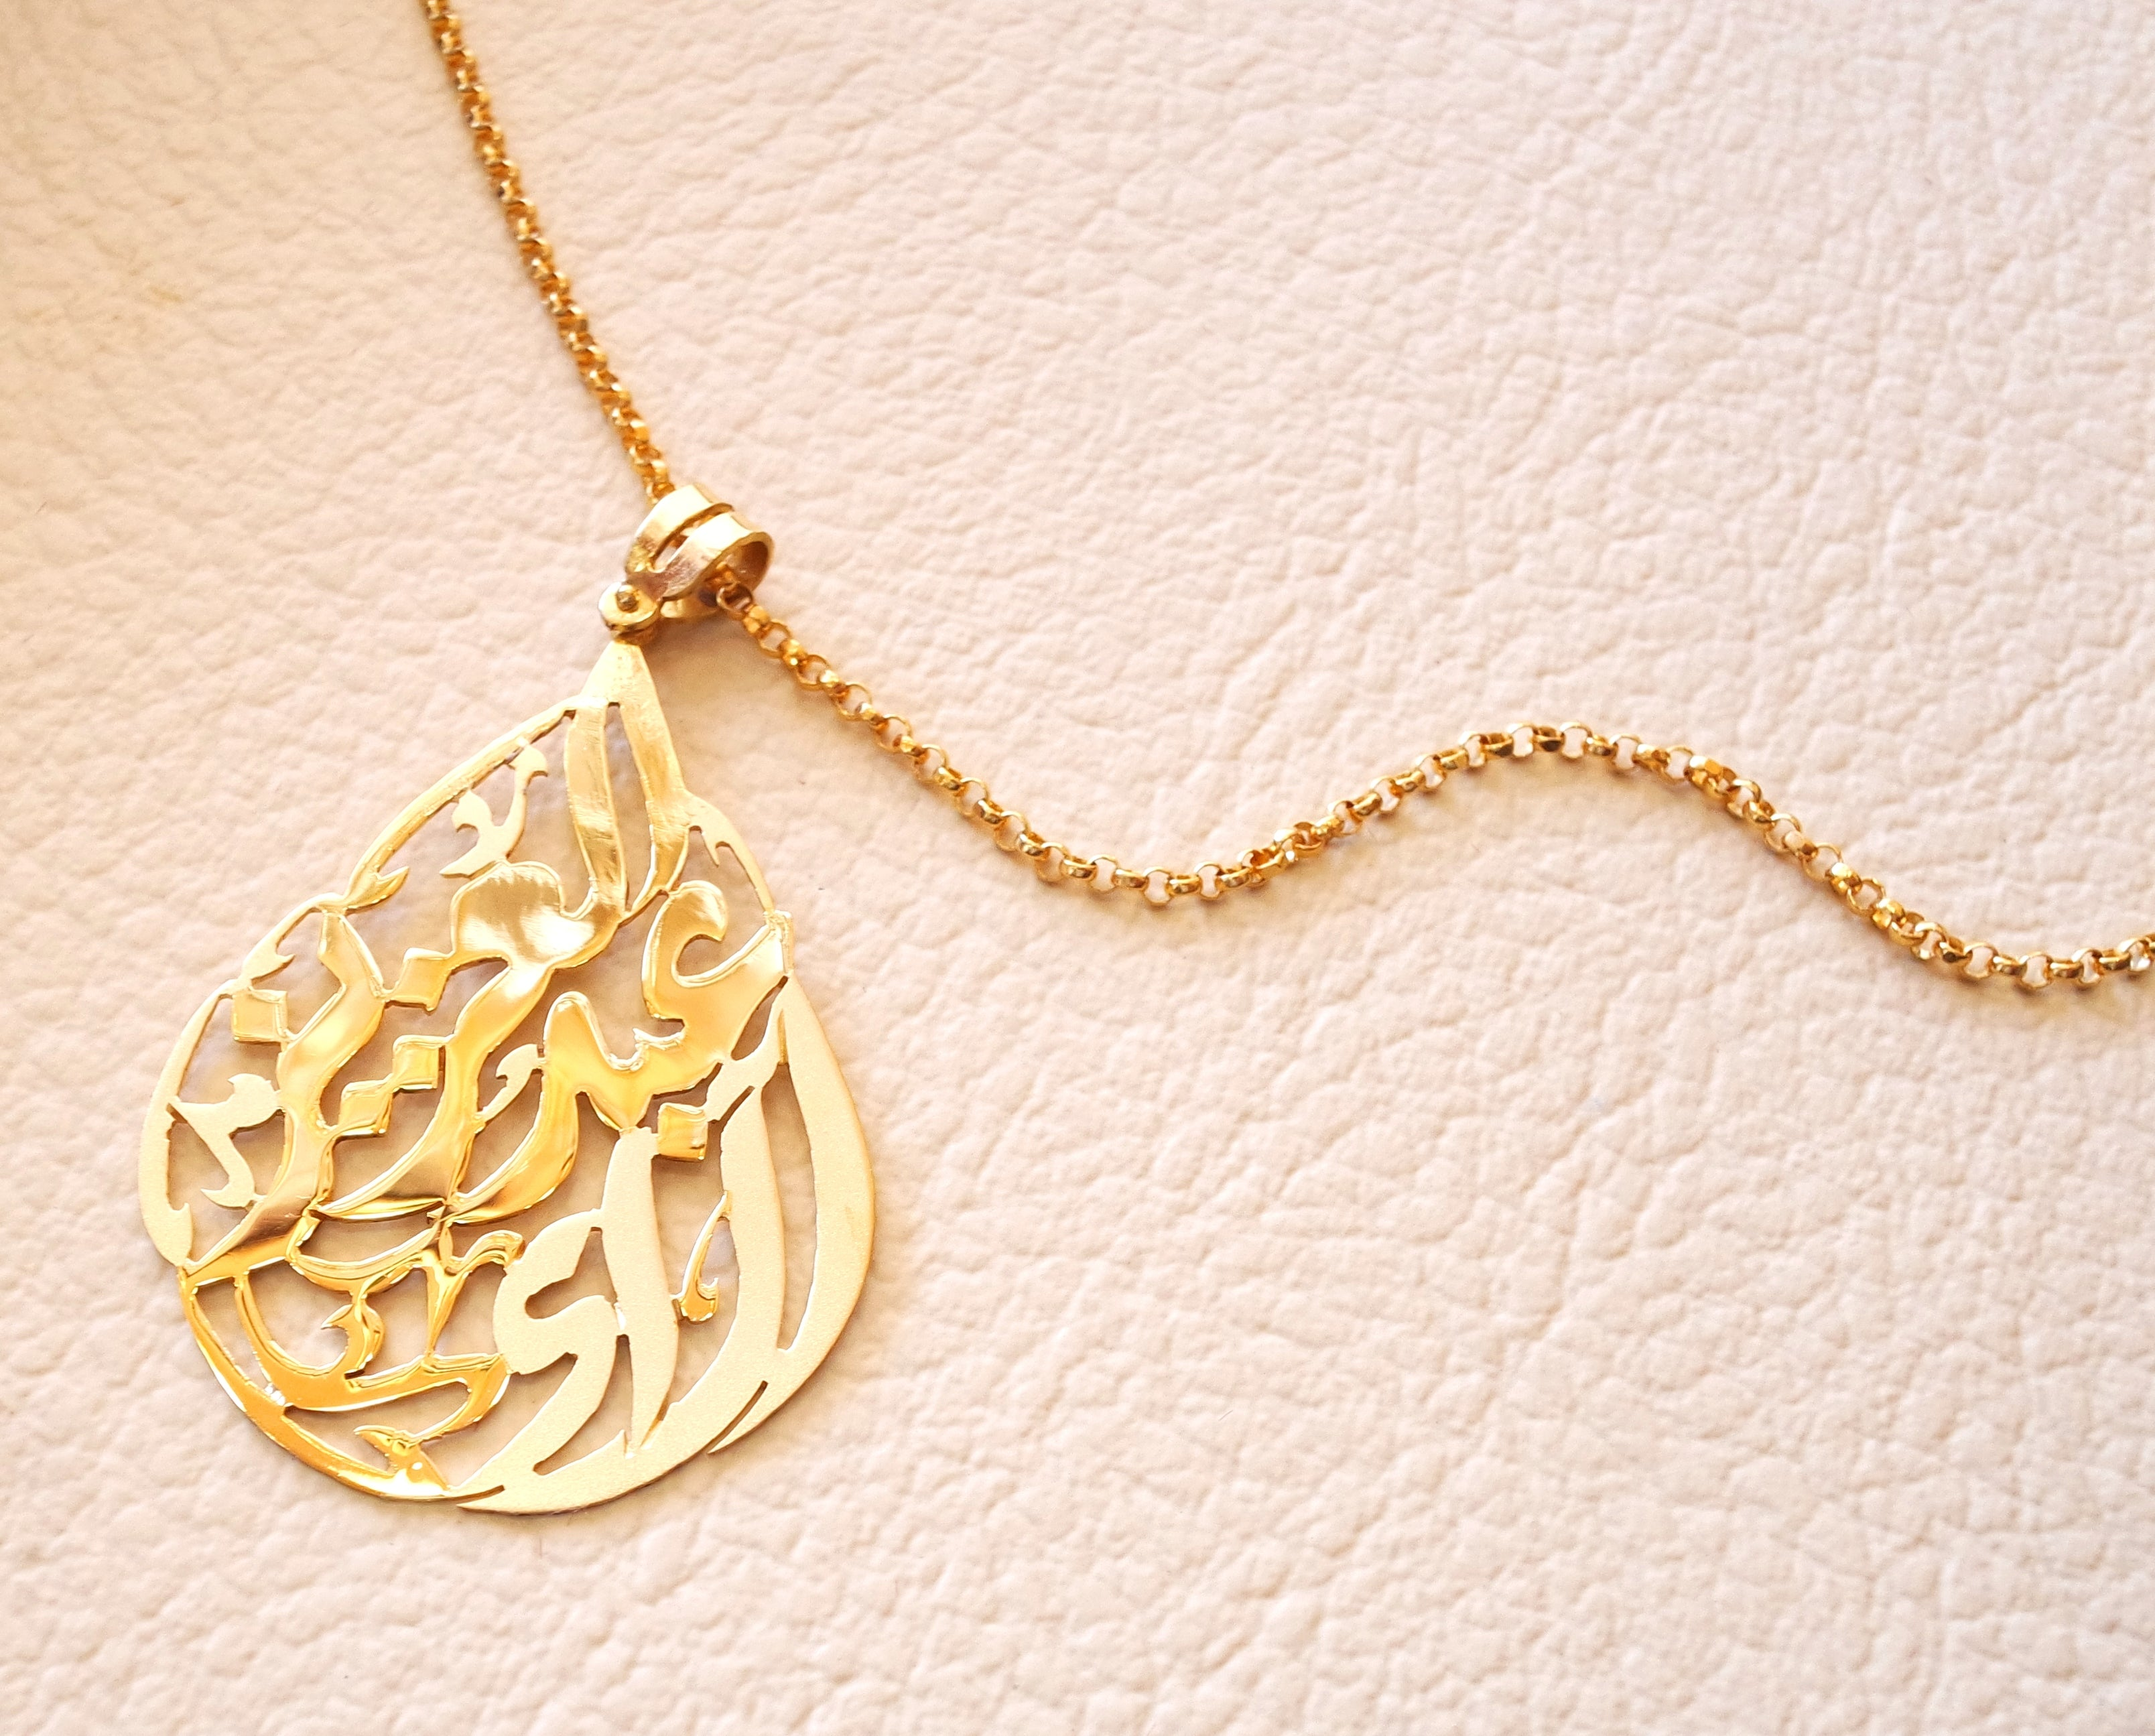 personalized customized 2 names 18 k gold arabic calligraphy pendant